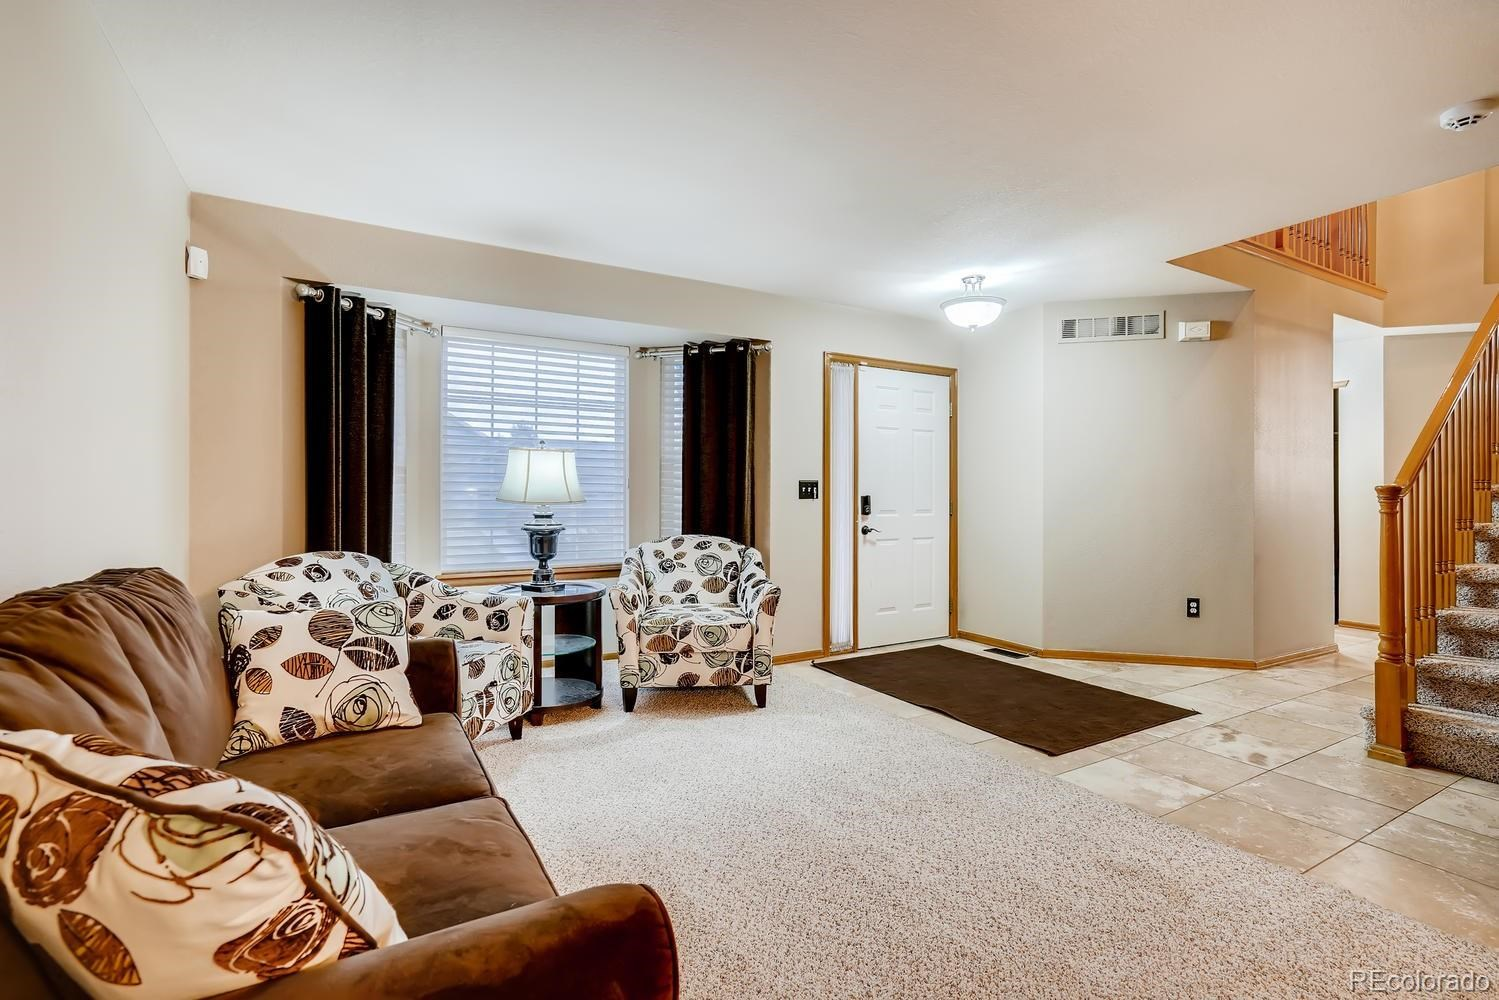 MLS# 6431155 - 4 - 6773 W 98th Circle, Westminster, CO 80021